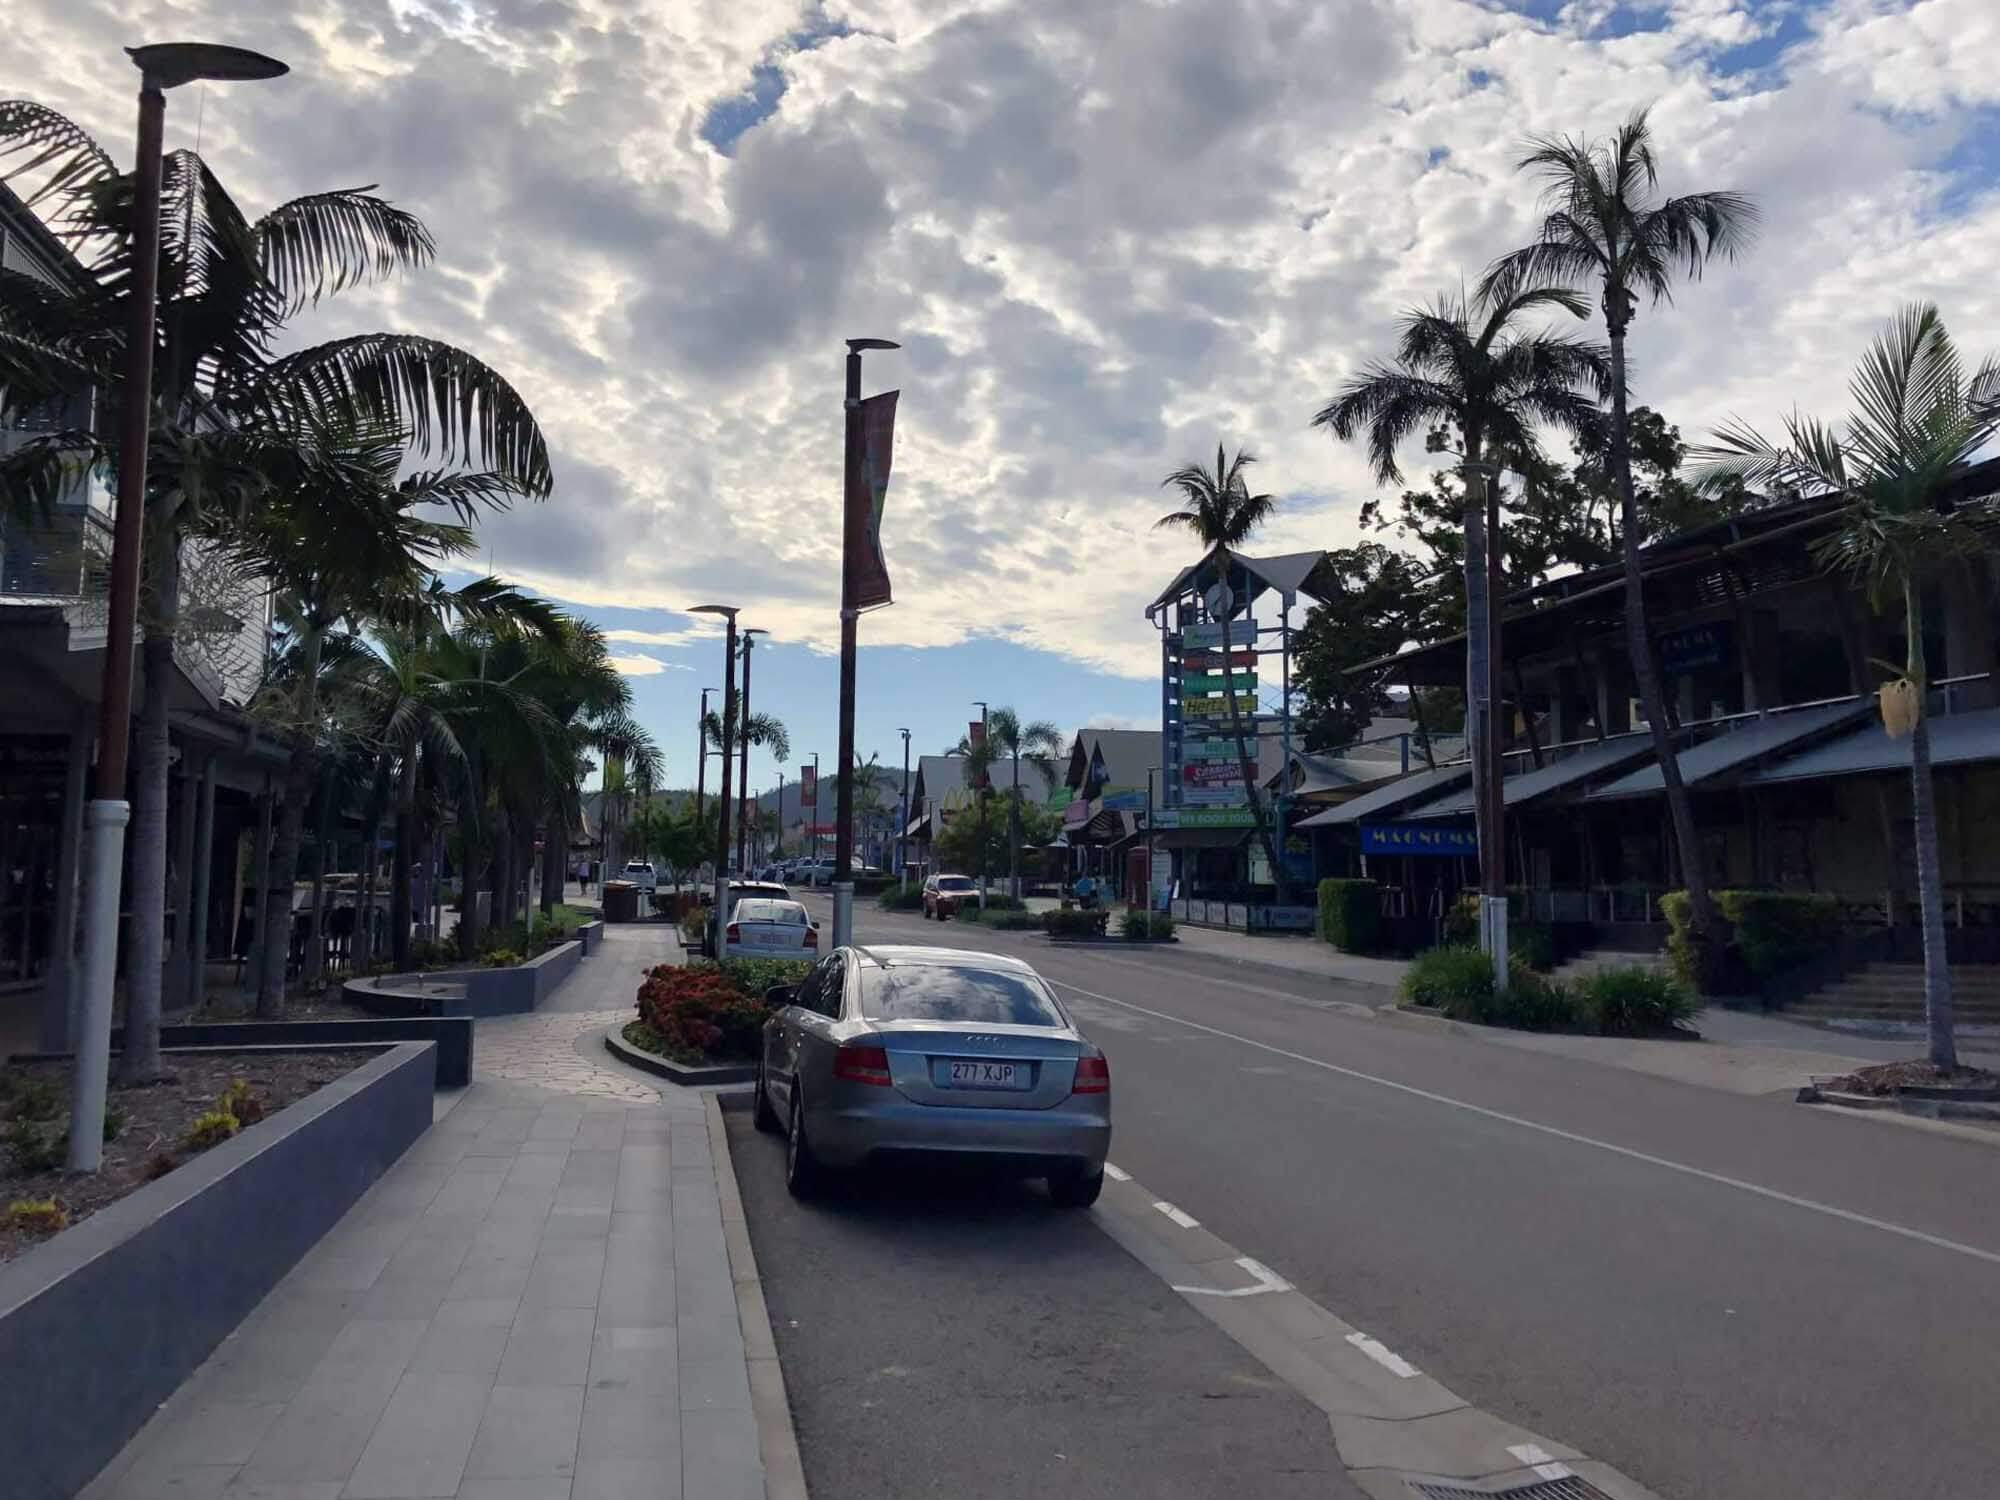 Roteiro em Airlie Beach: The 9 Best Tips Things to DO in Airlie Beach, Australia